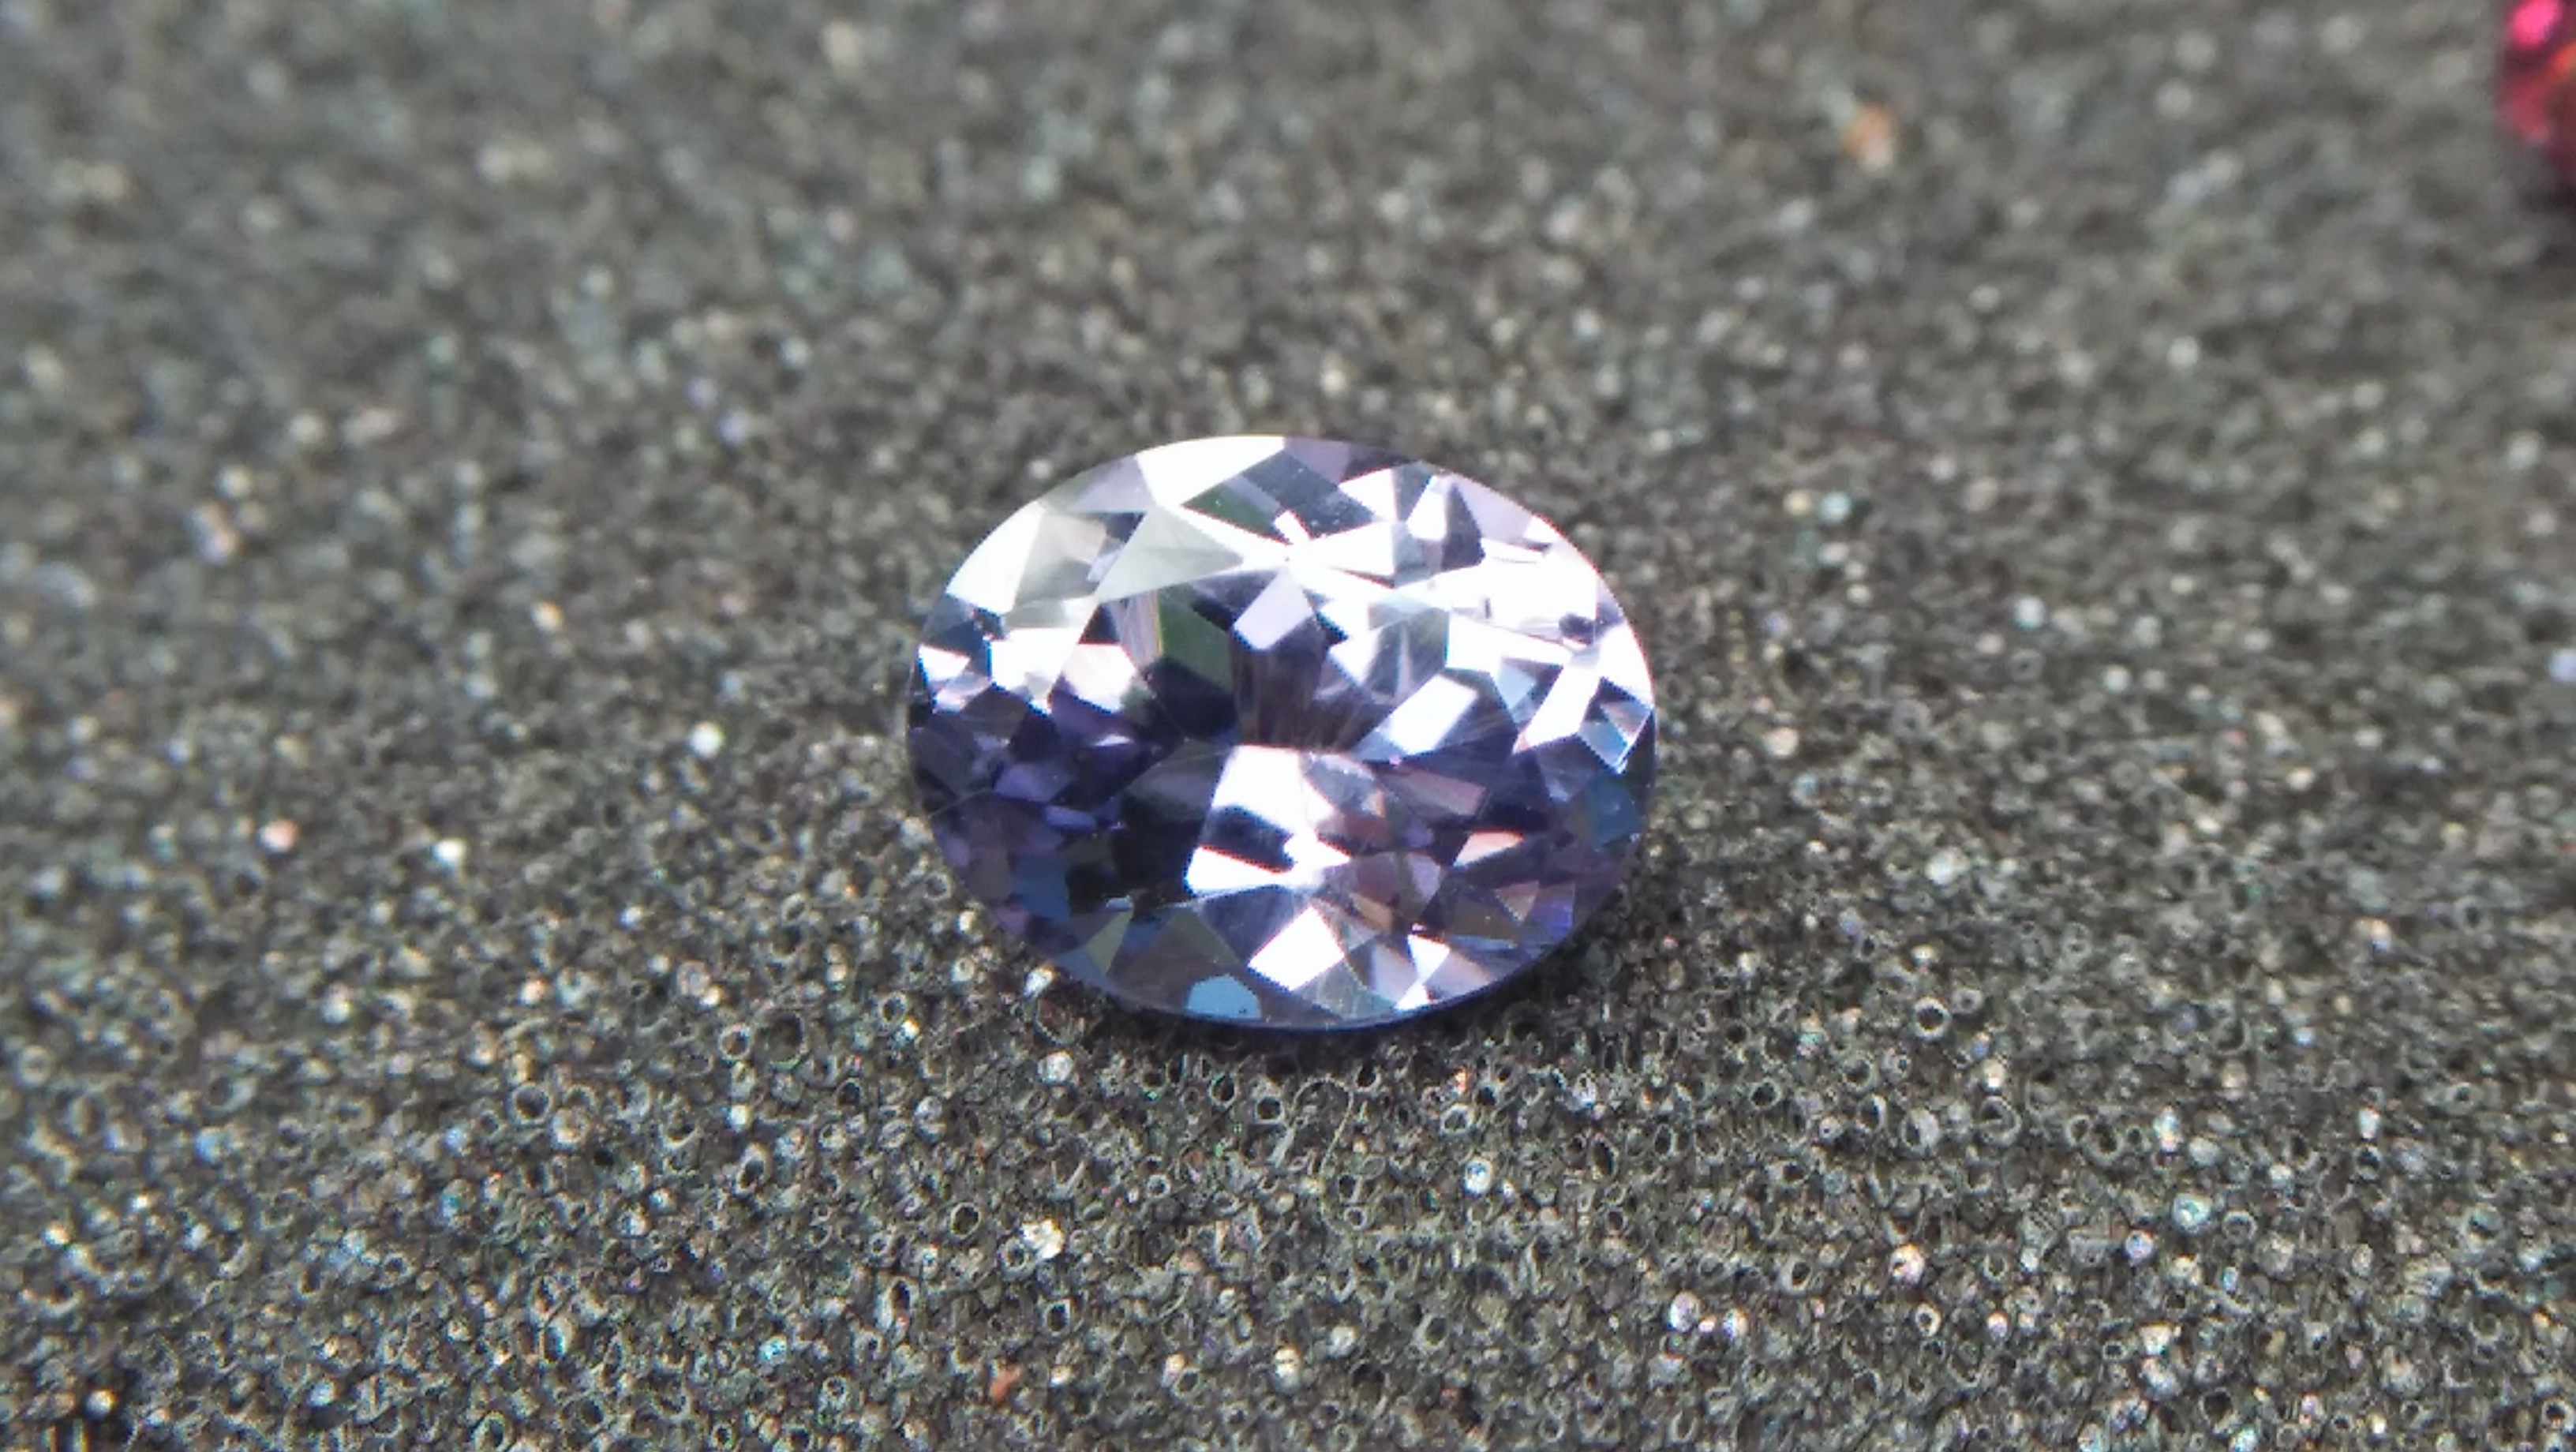 NATURAL Bluish Violet SPINEL Shape : Ovel Clarity : SI Treatment : Natural/Unheated Dimension : 7.5mm x 5.9mm x 4.05mm Weight : 1.29Cts Colour : Bluish Violet